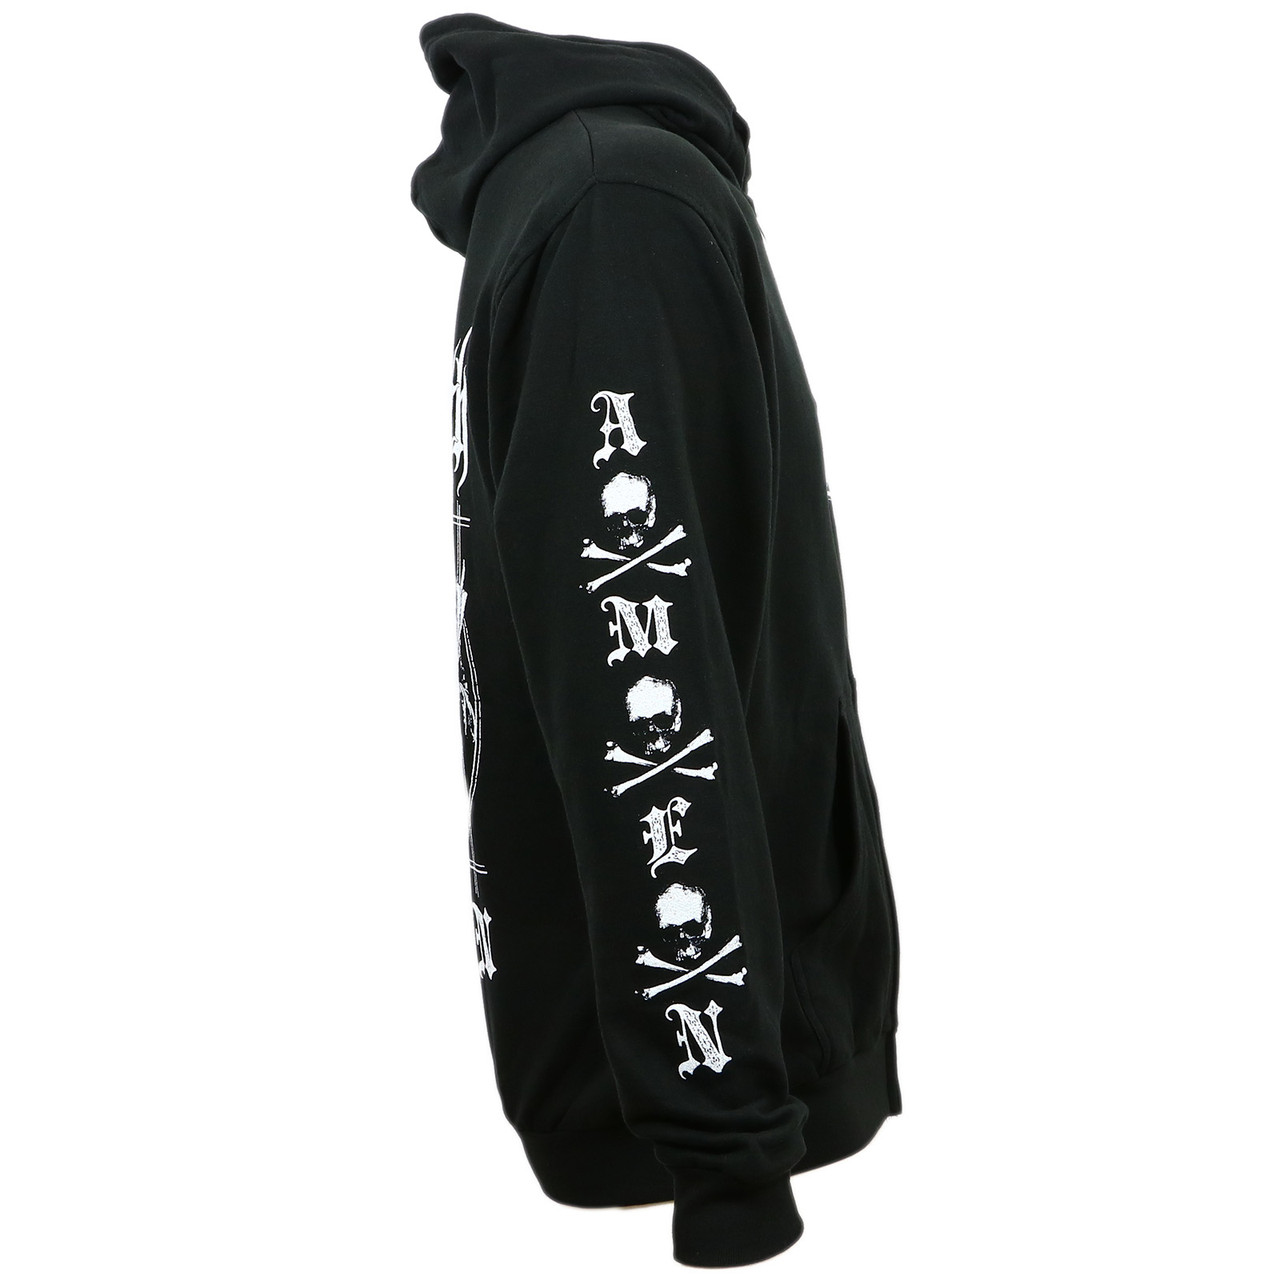 https://d3d71ba2asa5oz.cloudfront.net/12013655/images/10087316%20behemoth%20amen%20zip%20up%20hoodie%20(1).jpg